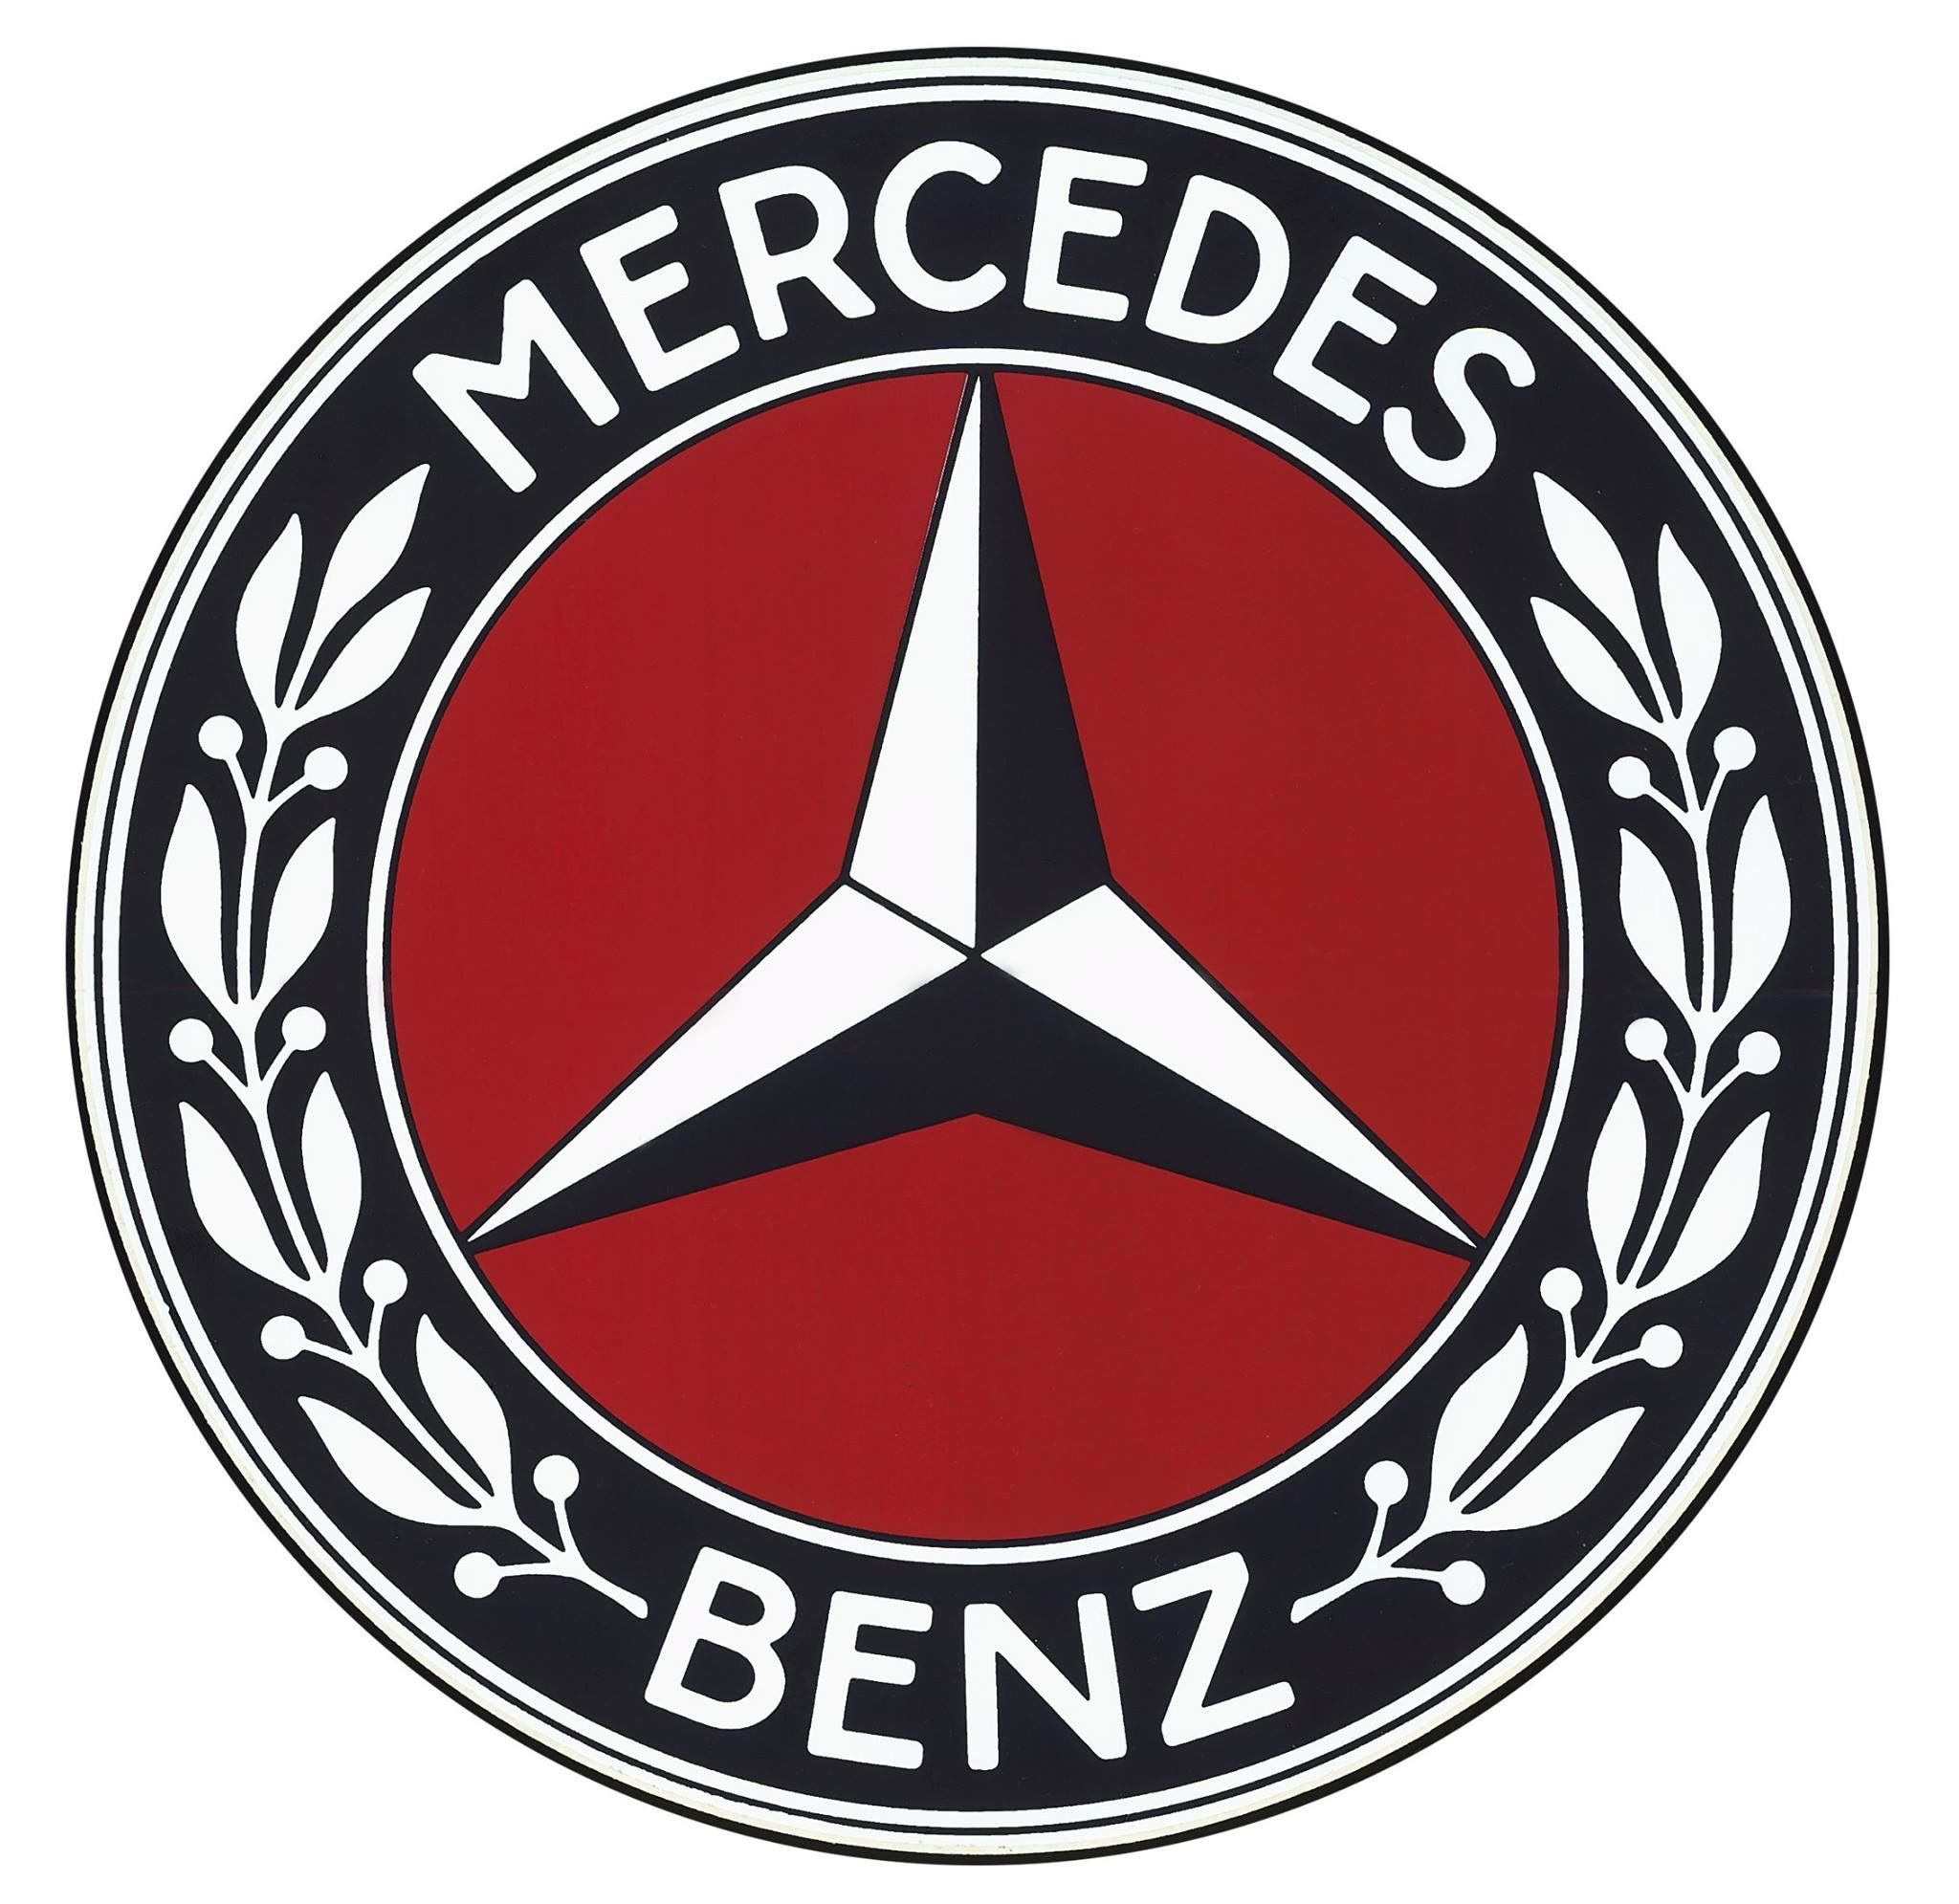 Pin By Pedram Moallemian On Mercedes Benz With Images Mercedes